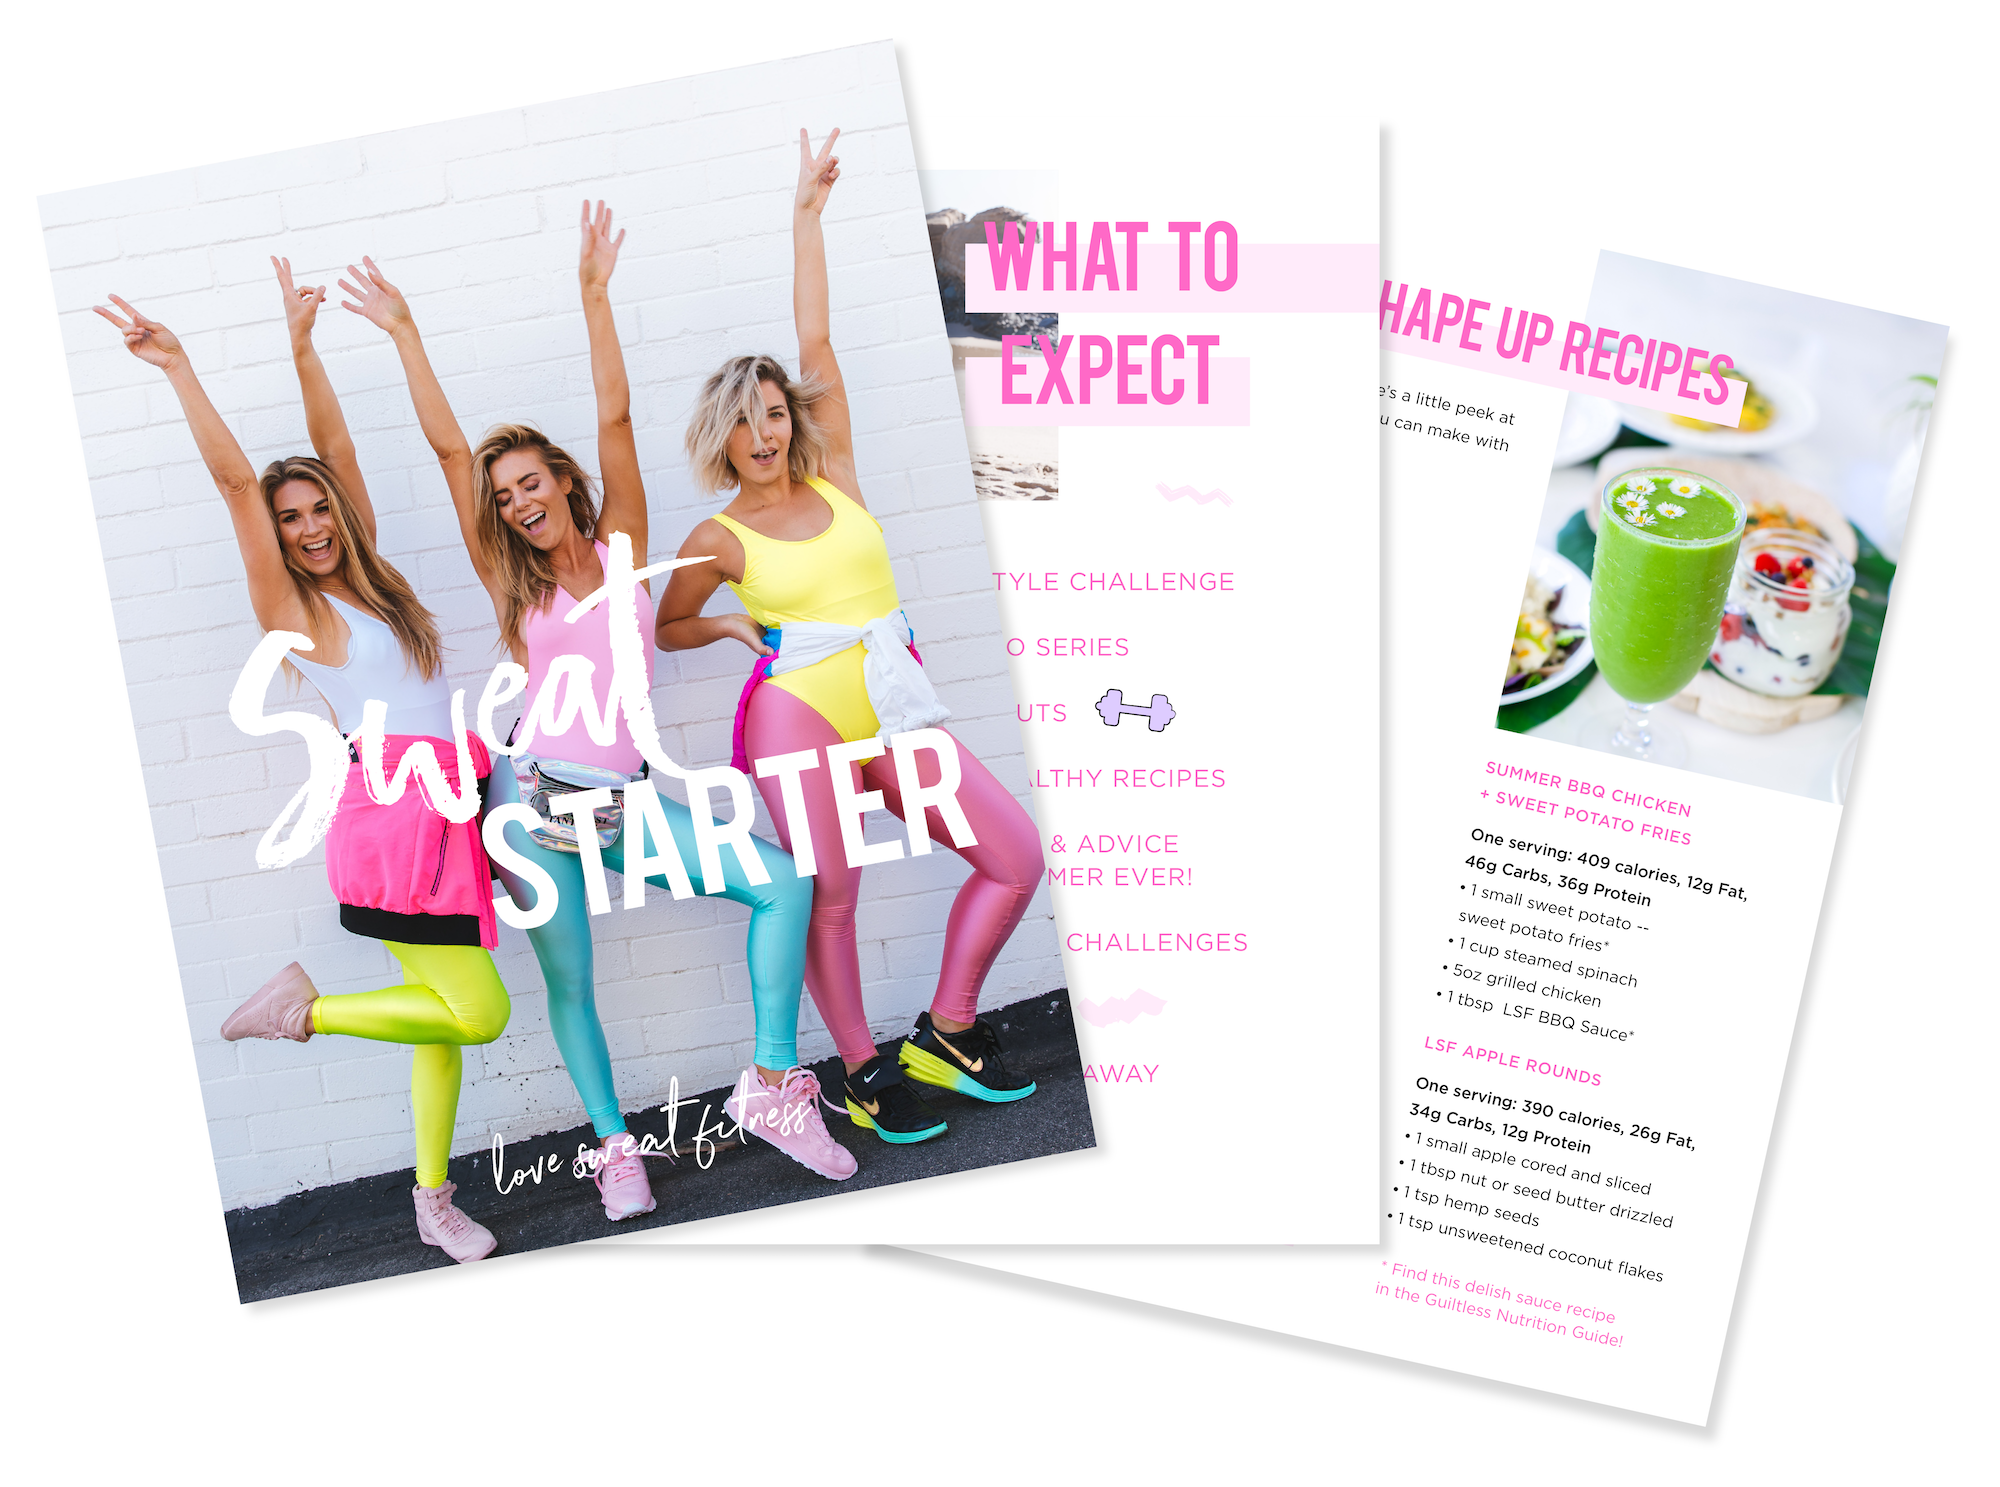 This free 8 week challenge will get you feeling confident and toned this summer! Join now and download your free sweat starter.